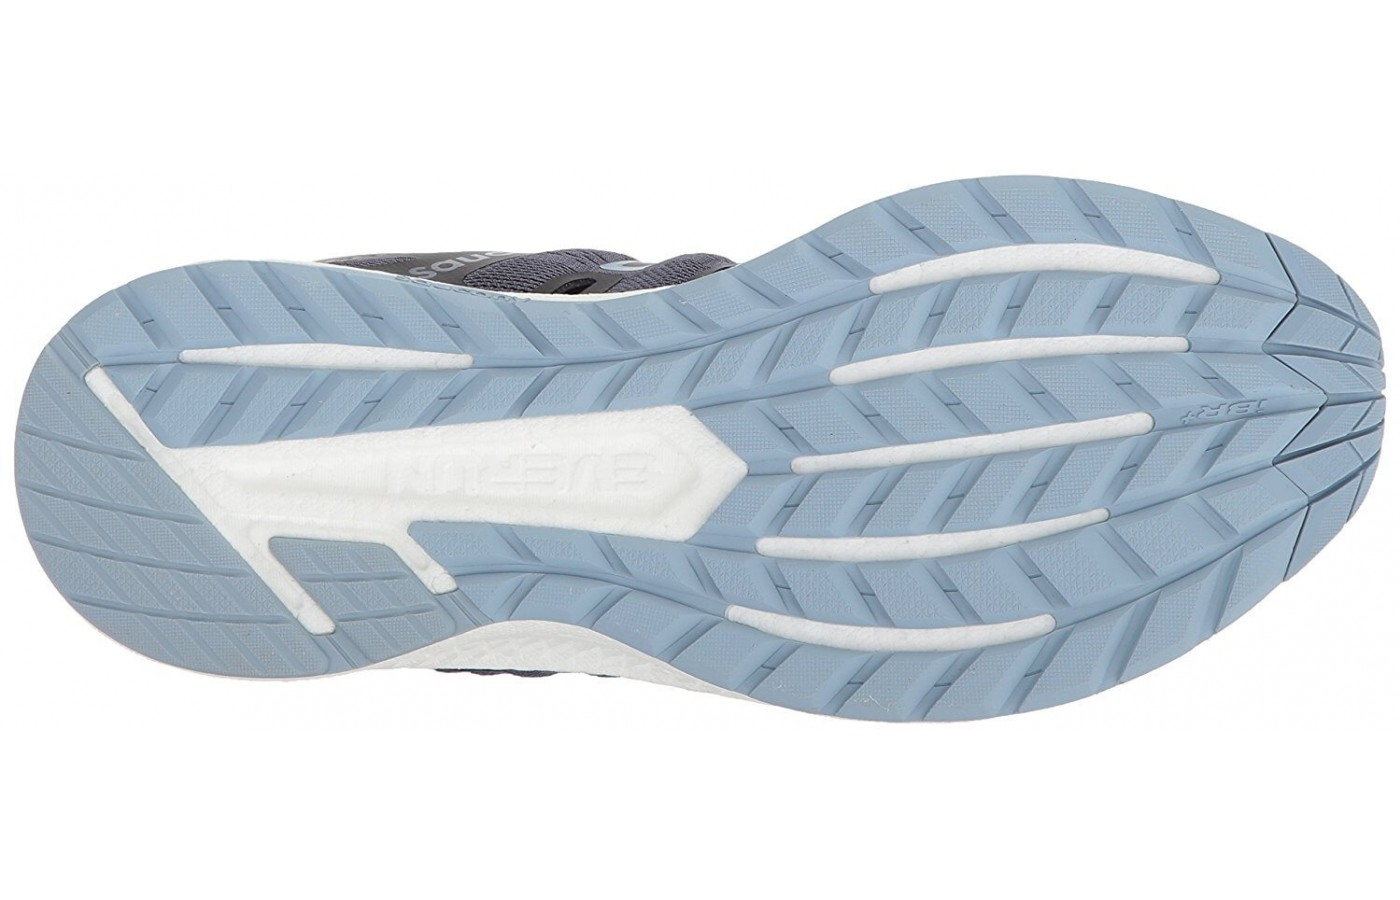 The redesigned TRI-FLEX outsole adds flexibility